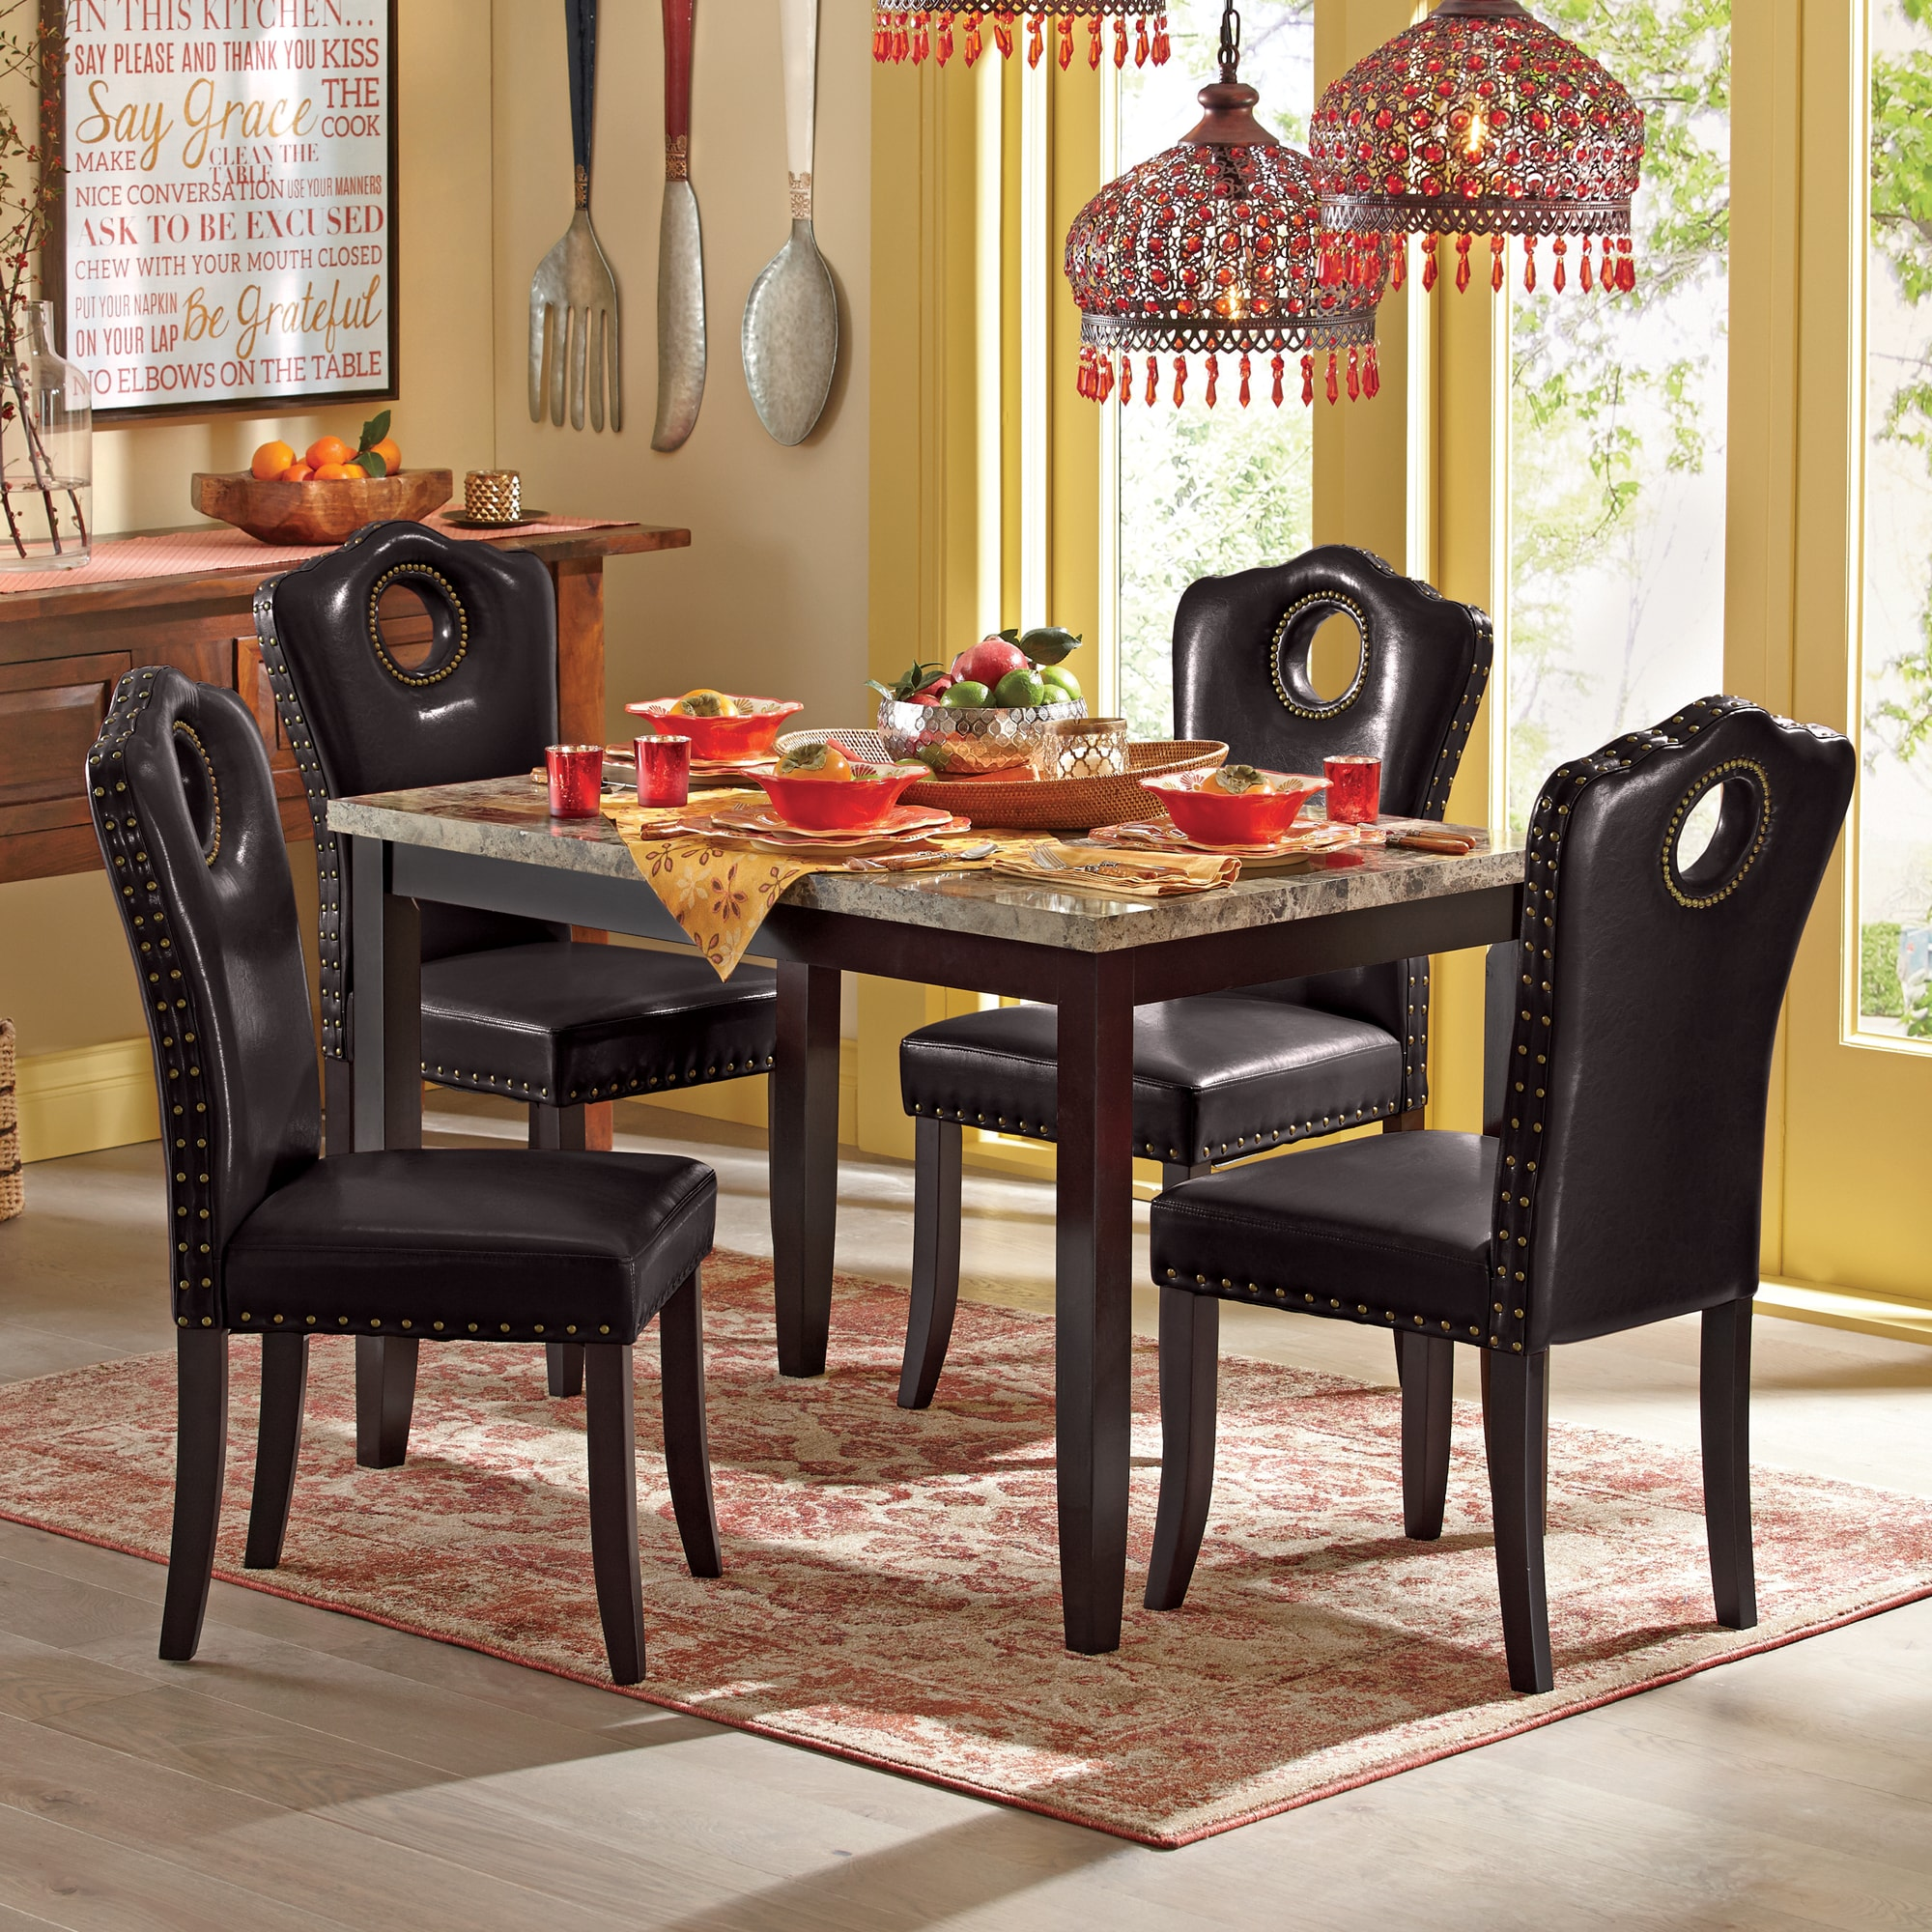 make kitchen table outdoor sets marble look dining and nailhead chairs seventh avenue large